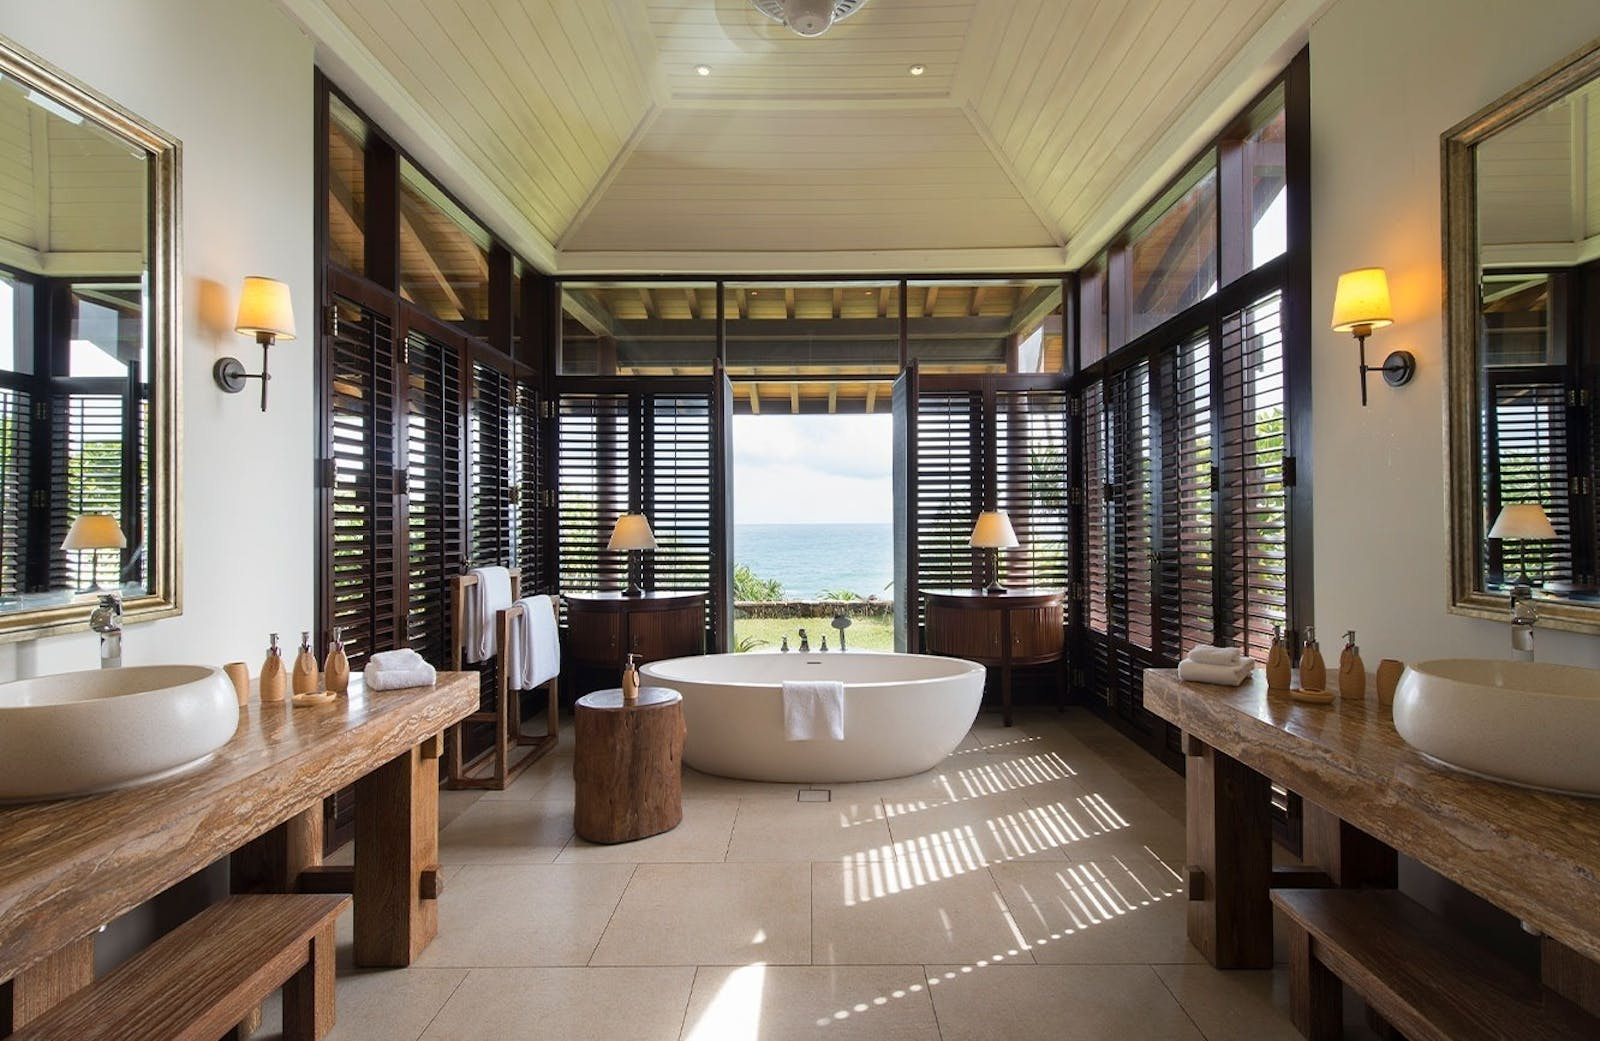 Bathroom example at Cape Weligama